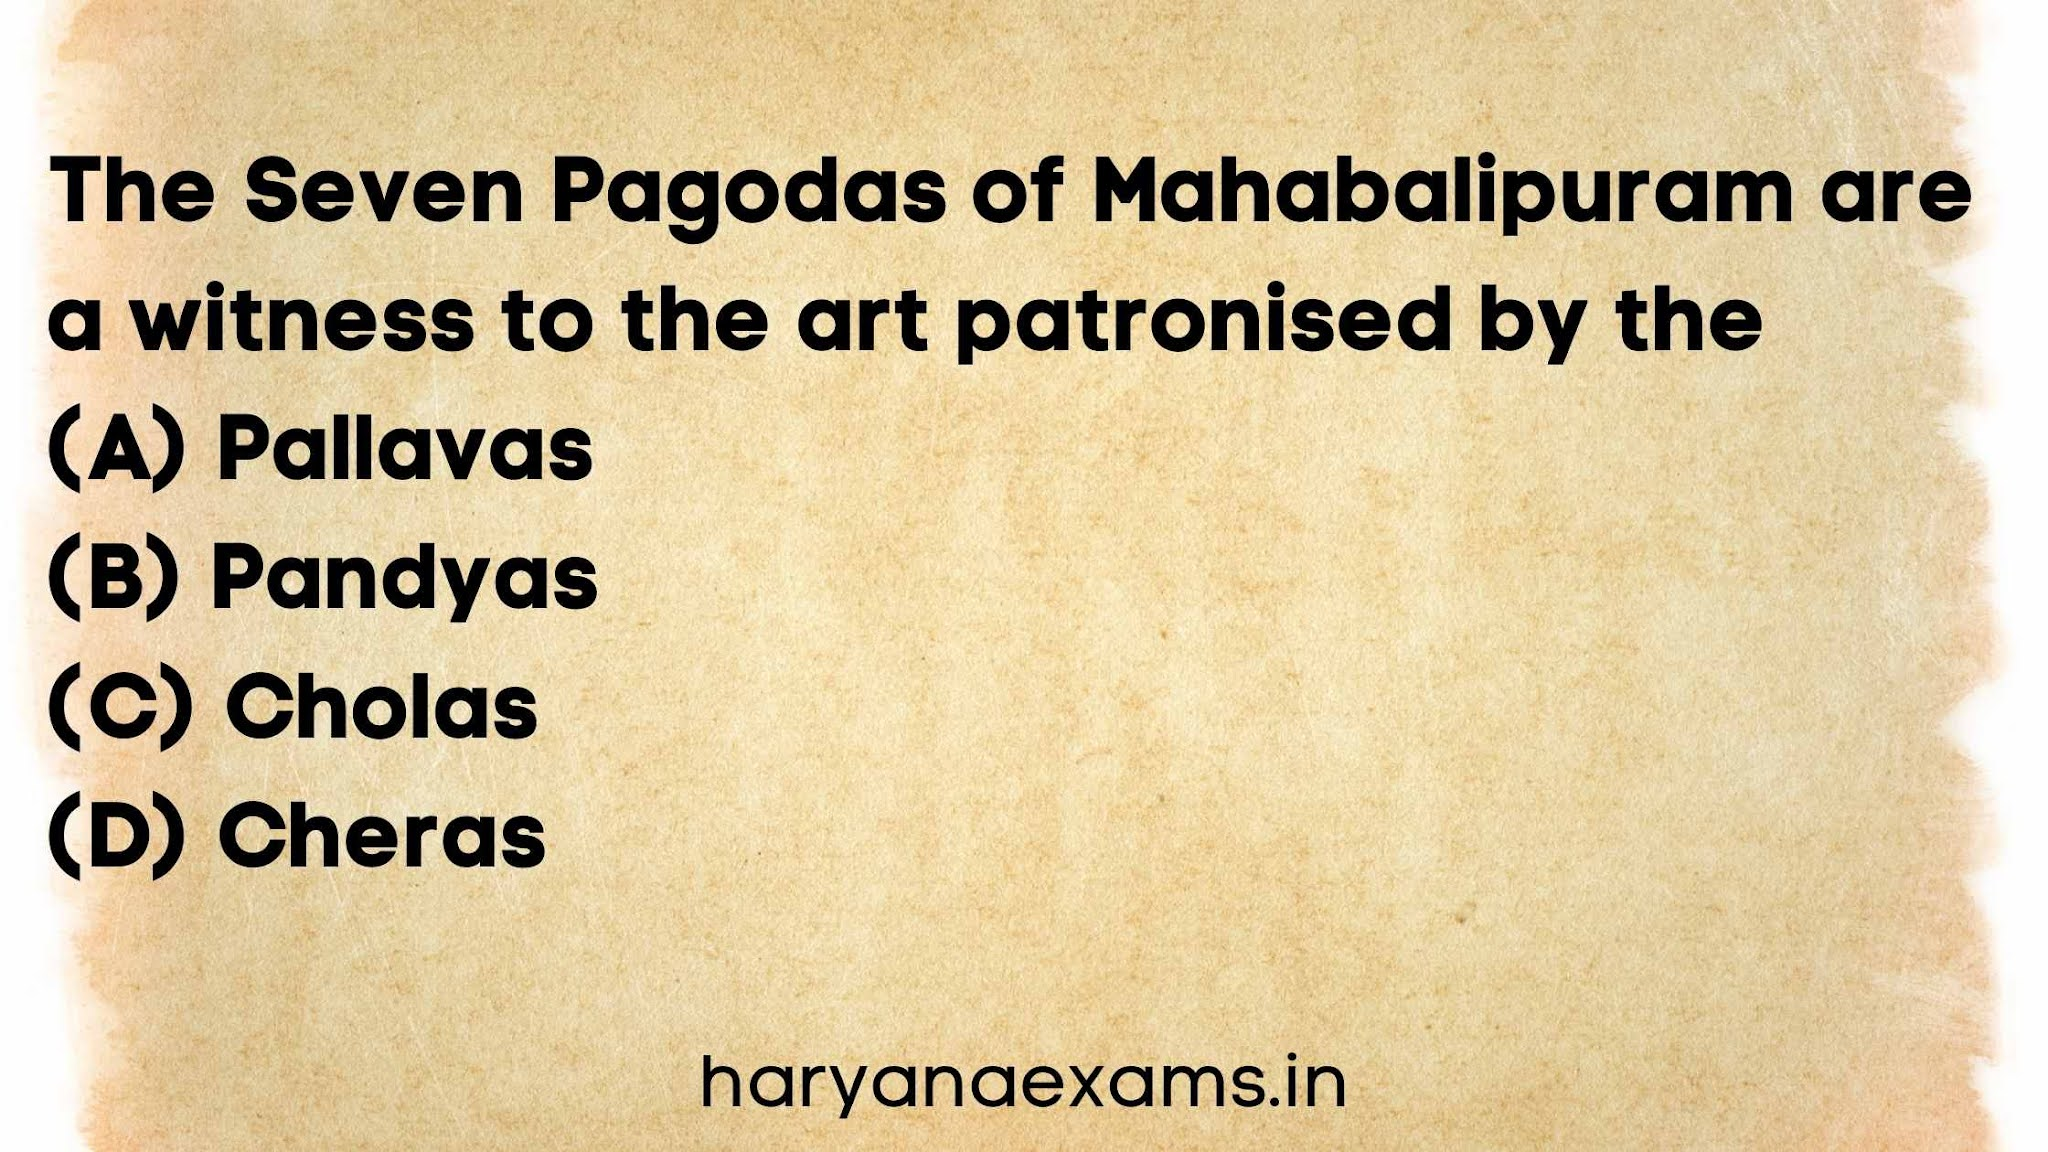 The Seven Pagodas of Mahabalipuram are a witness to the art patronised by the   (A) Pallavas   (B) Pandyas   (C) Cholas   (D) Cheras